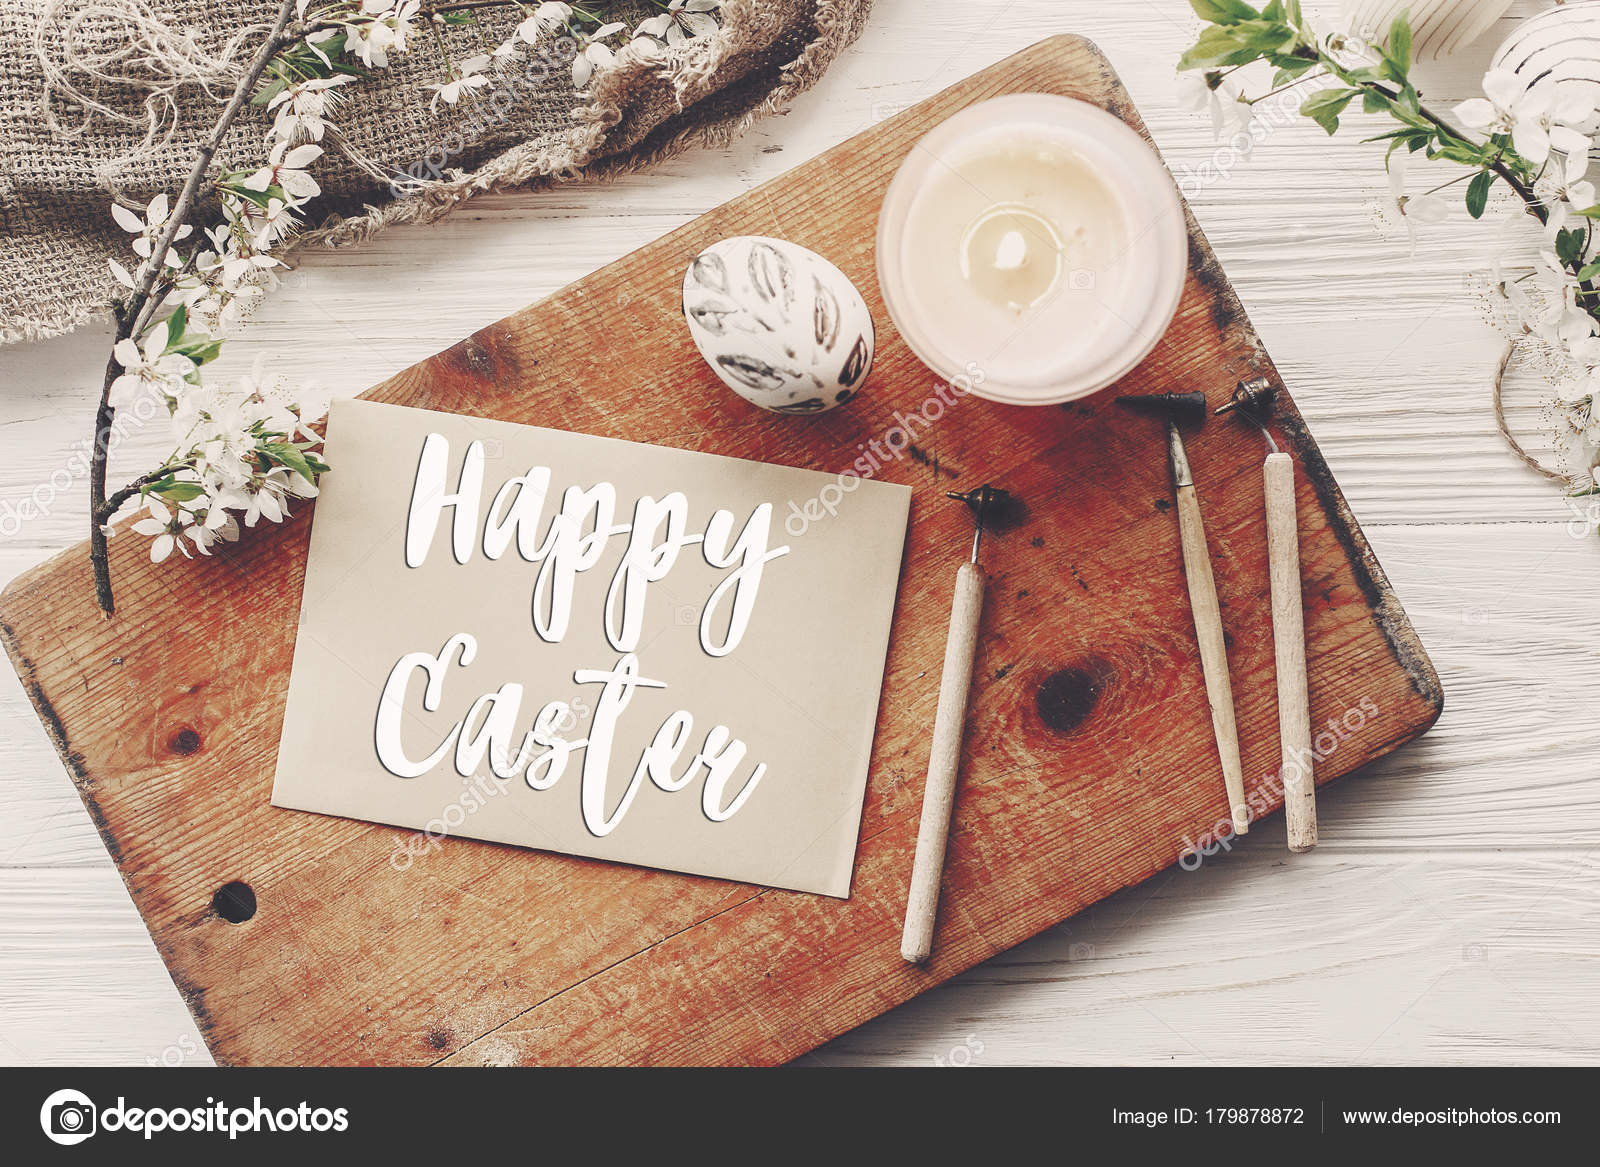 Happy Easter Text Flat Lay Flowers Stylish Eggs Rustic Wooden